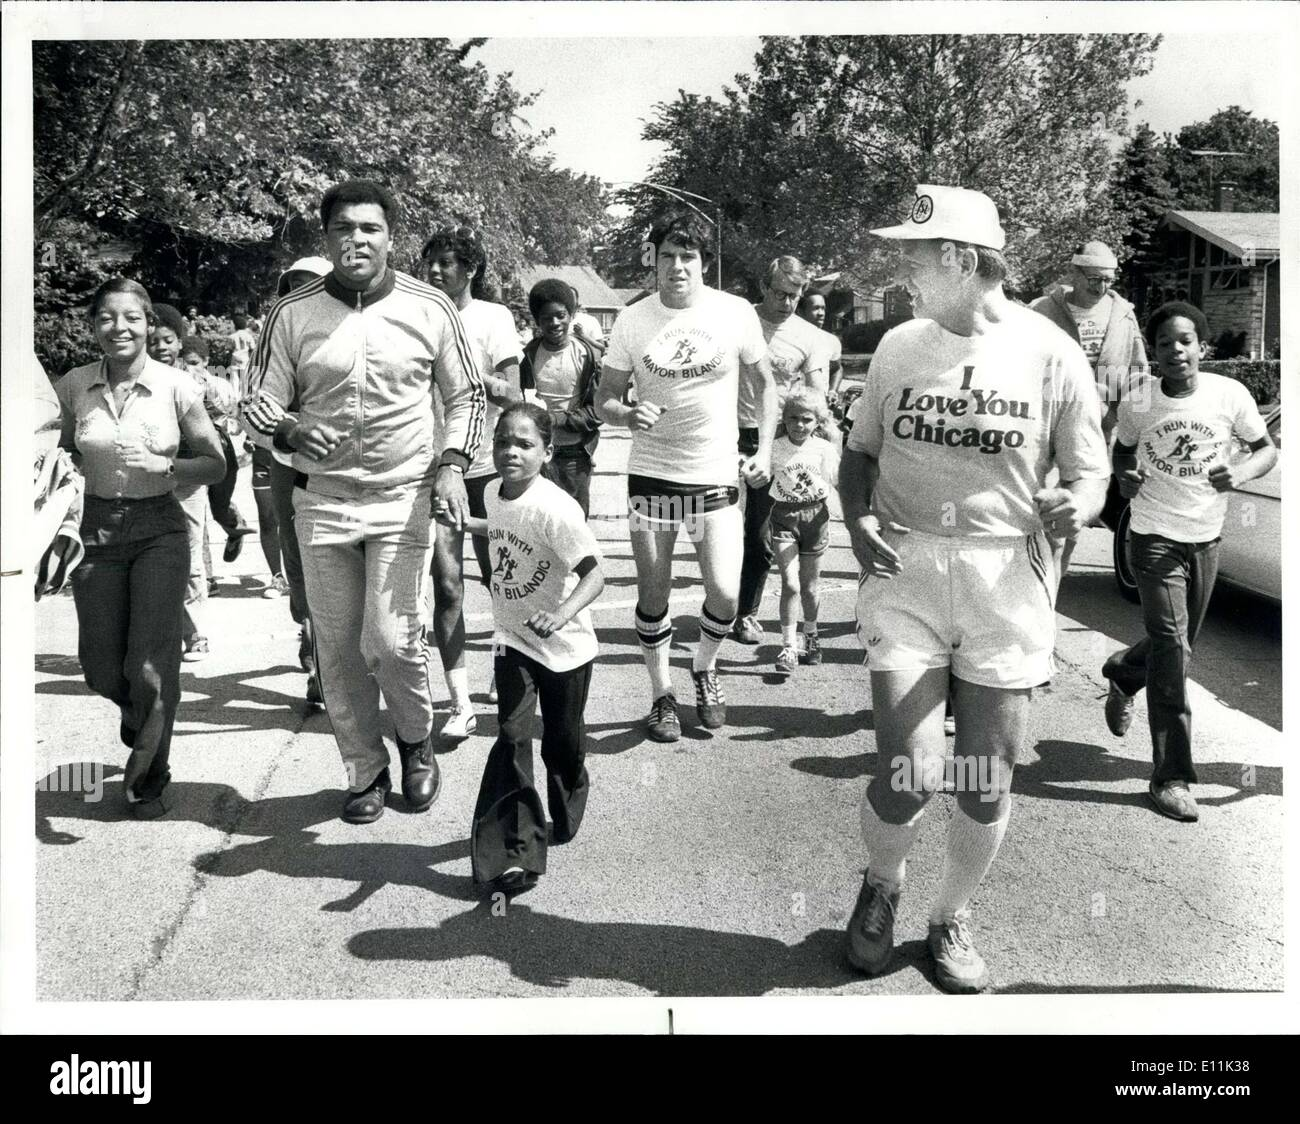 Jun. 03, 1978 - Jim Frost Avalon Park: people running with Muhammad Ali and Mayor Bilandic at Avalon Park as part of the mayor's summer youth marathon program in which the mayor runs 1 1/2 miles with youths 14 and under. - Stock Image